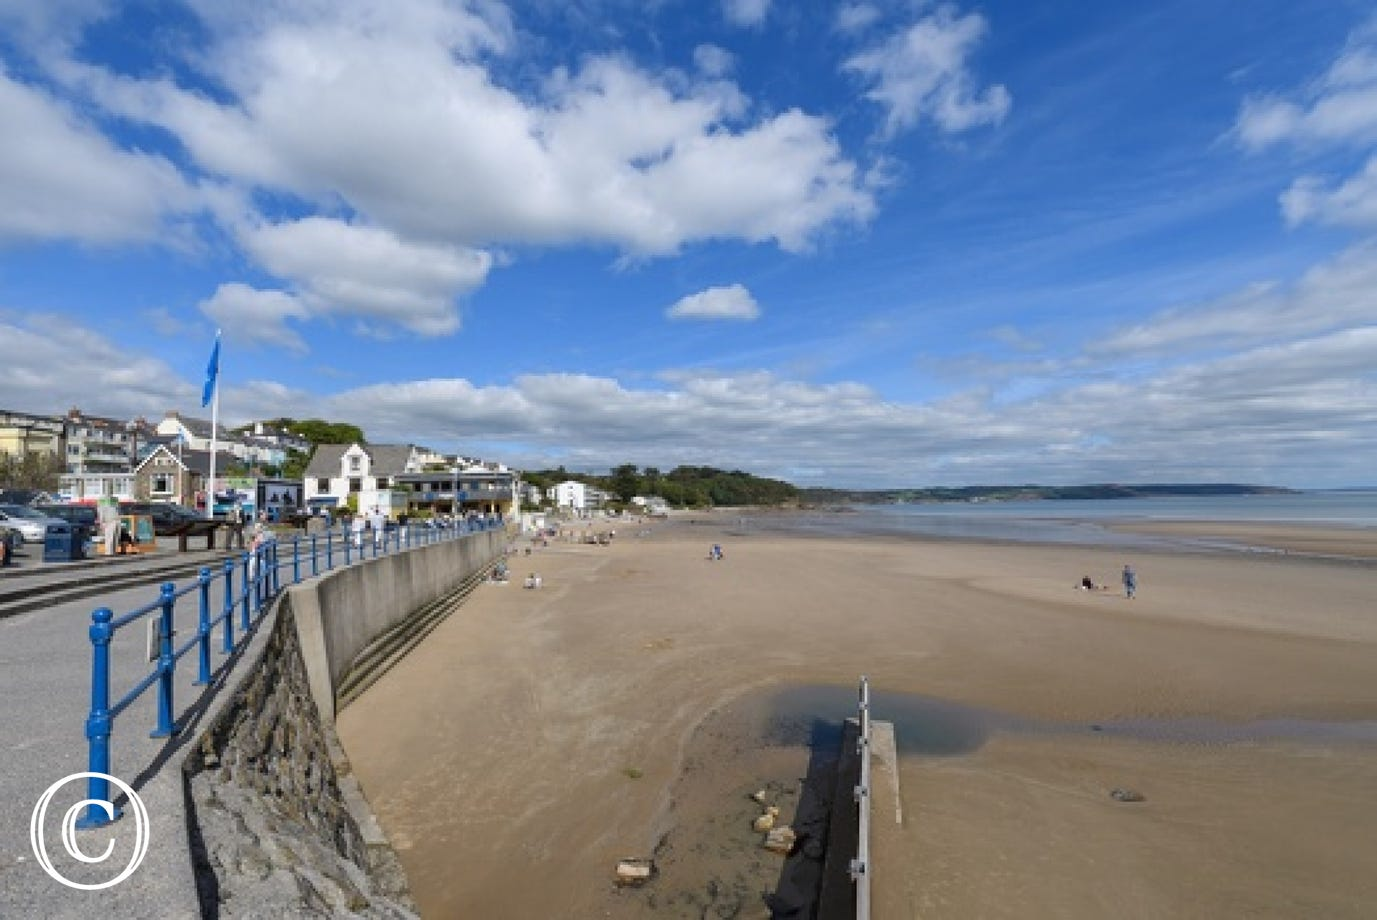 A view of the beautiful sandy beach of Saundersfoot